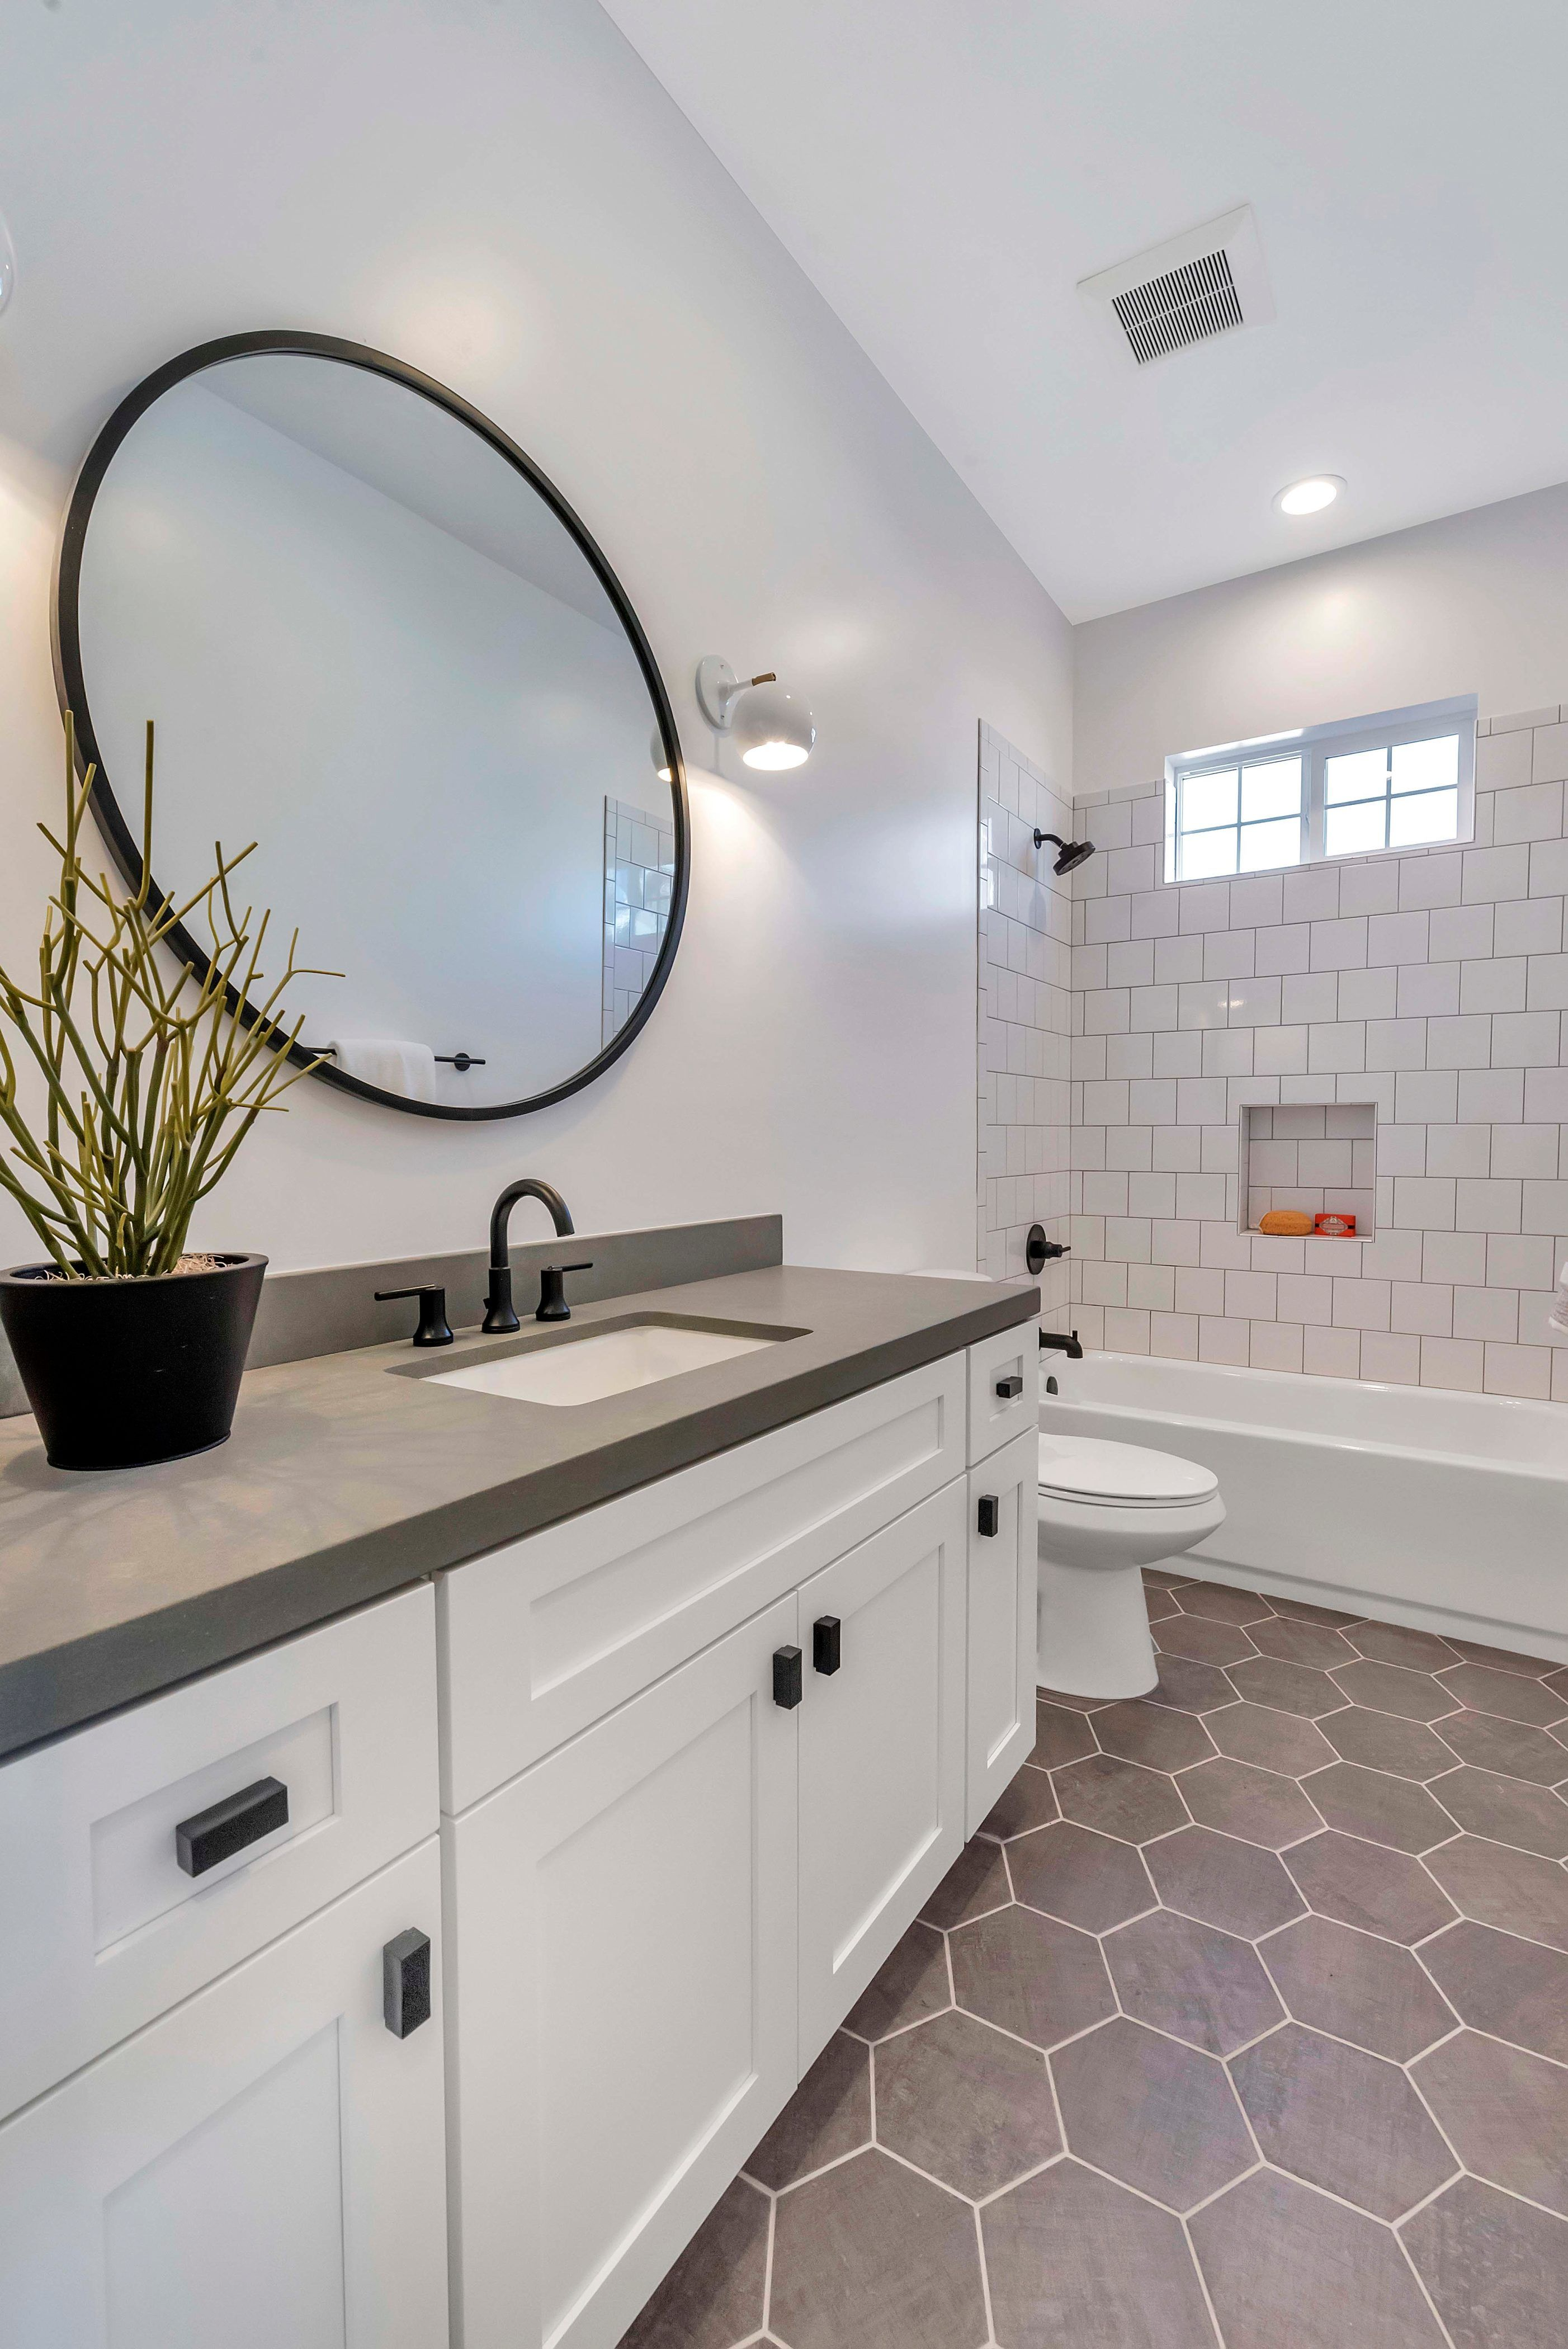 Shaker White Cabinets Are Great For A Bathroom Vanity With A Circle Mirror And Geometric Tile Floors Bathroom Mirror Bathroom Remodel Tile Trendy Bathroom